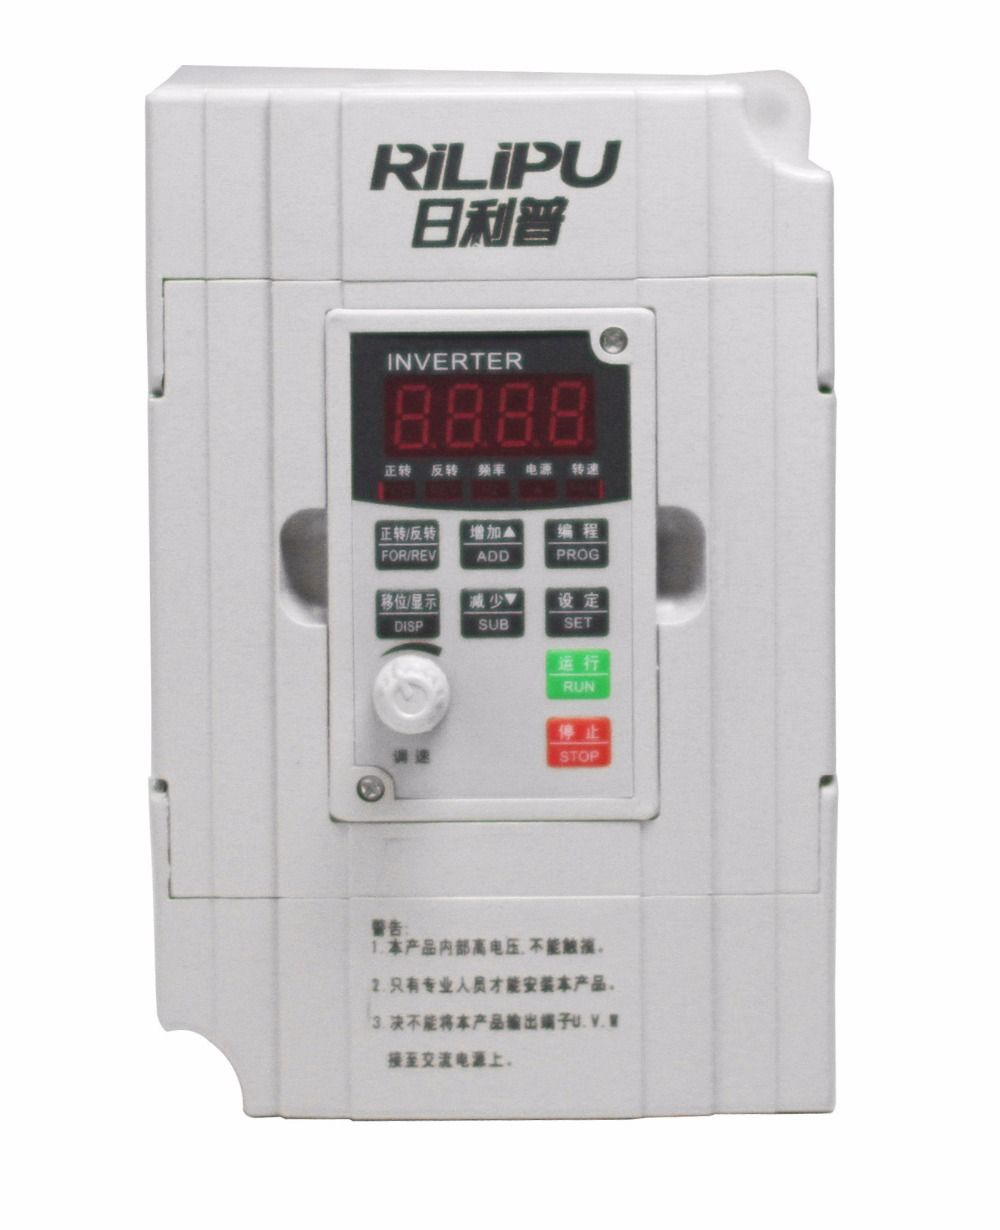 Rilipu Inverter Vfd Frequency Converter 220v 22kw Common Use Output 2500w Phase Control 3 Phases